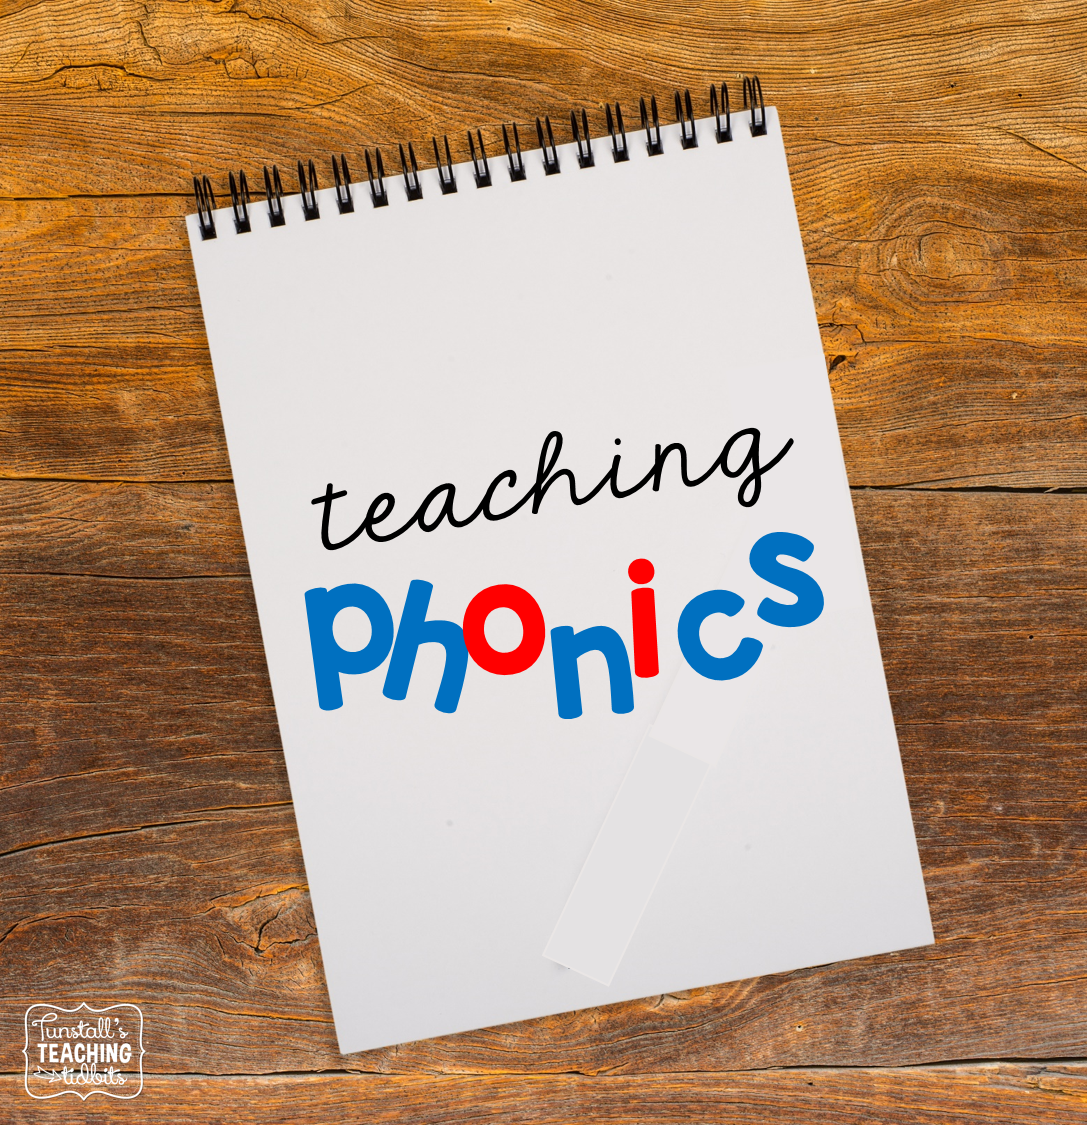 medium resolution of Lesson Planning Ideas: Teaching Phonics - Tunstall's Teaching Tidbits